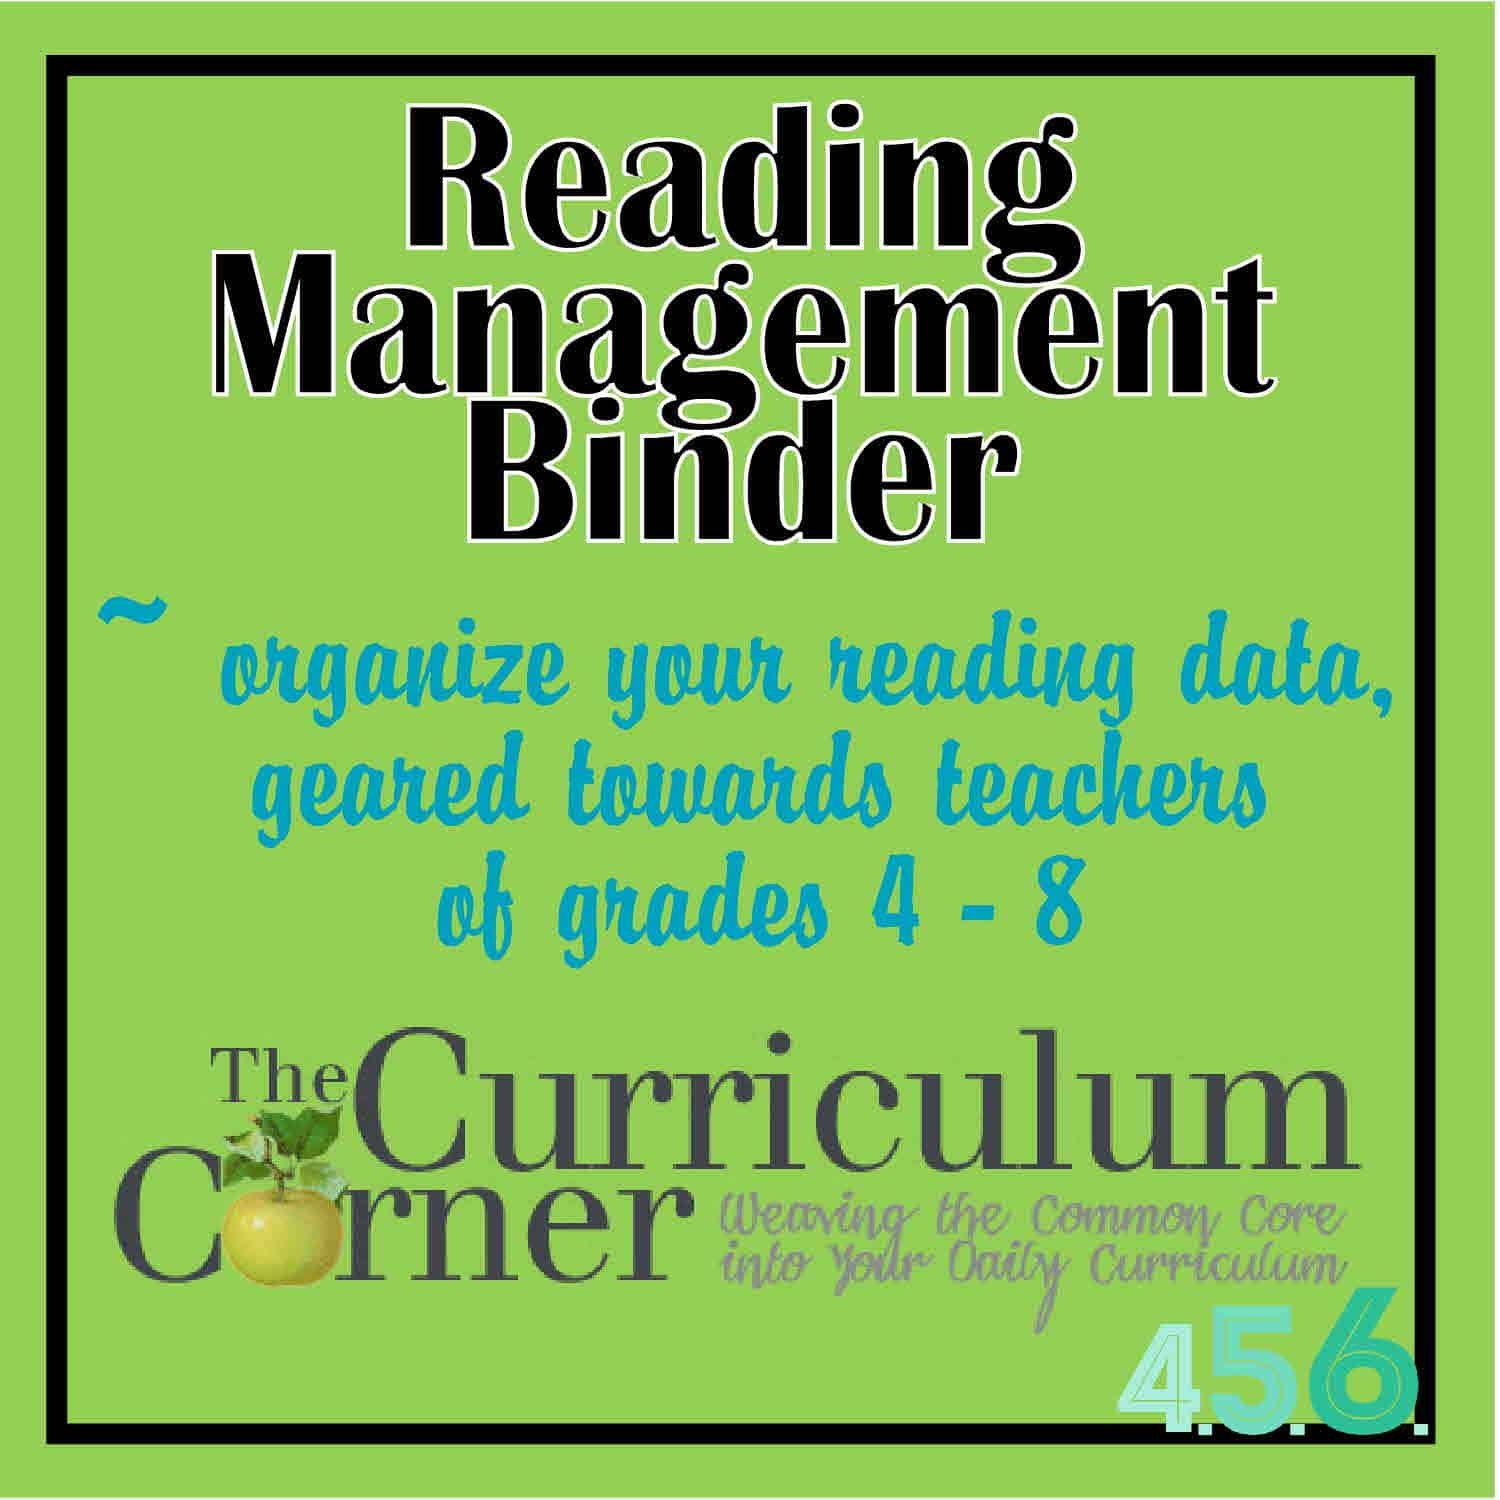 Reading management binder for grades 4 5 6 the curriculum corner 4 5 6 free reading management binder for grades 4 through 8 from the curriculum corner 456 geenschuldenfo Image collections